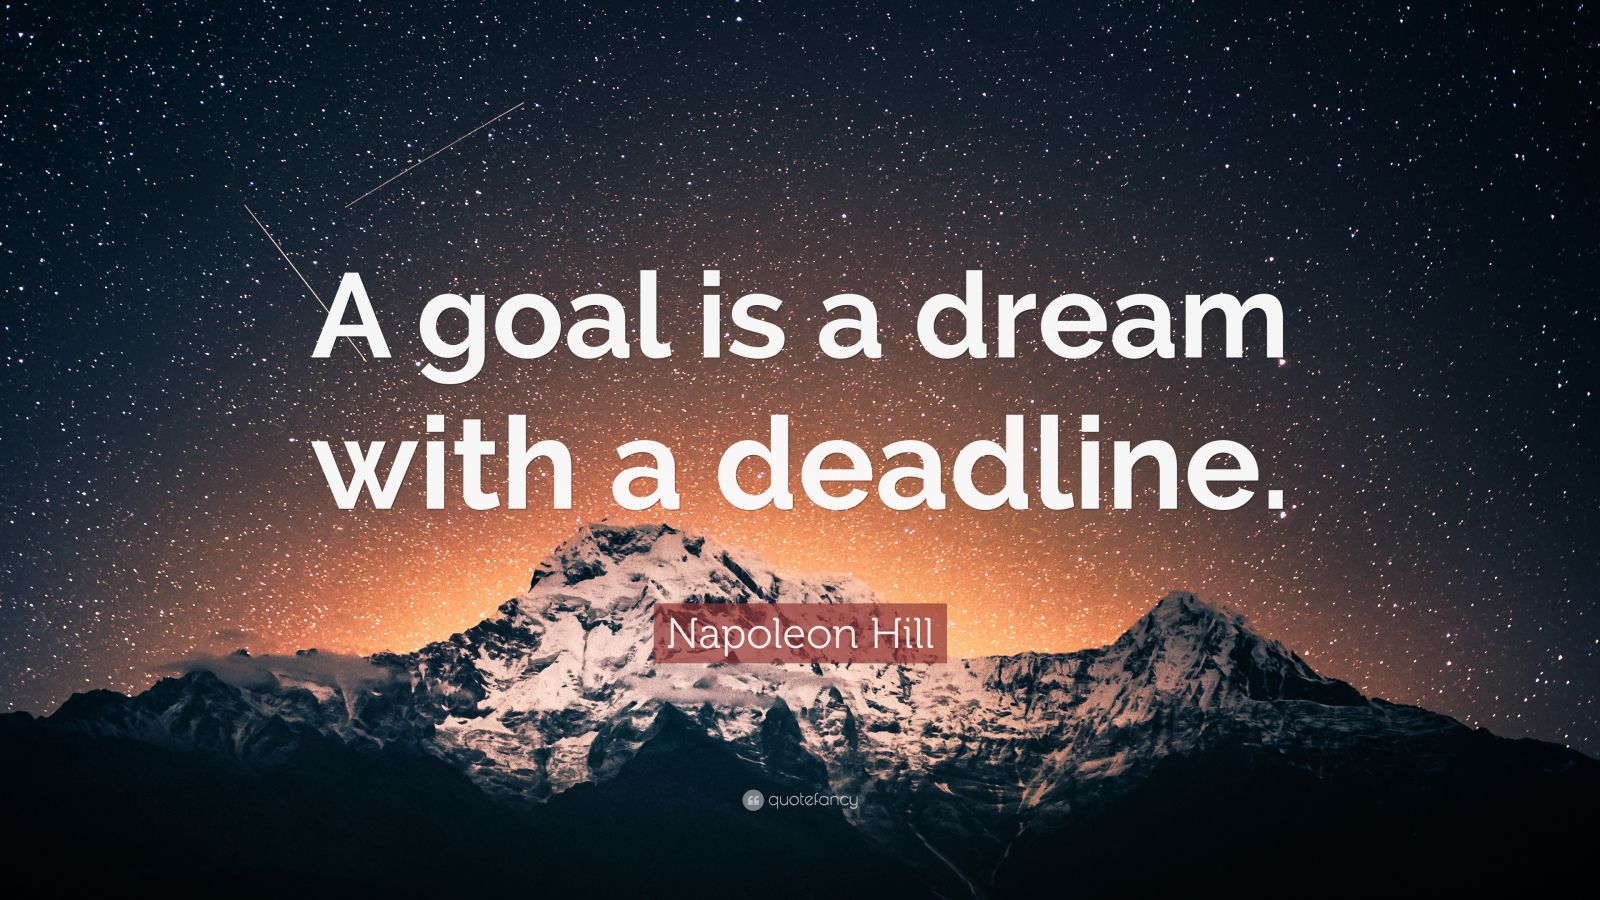 Inspirational Entrepreneurship Quotes: U201cA Goal Is A Dream With A Deadline.u201d  U2014